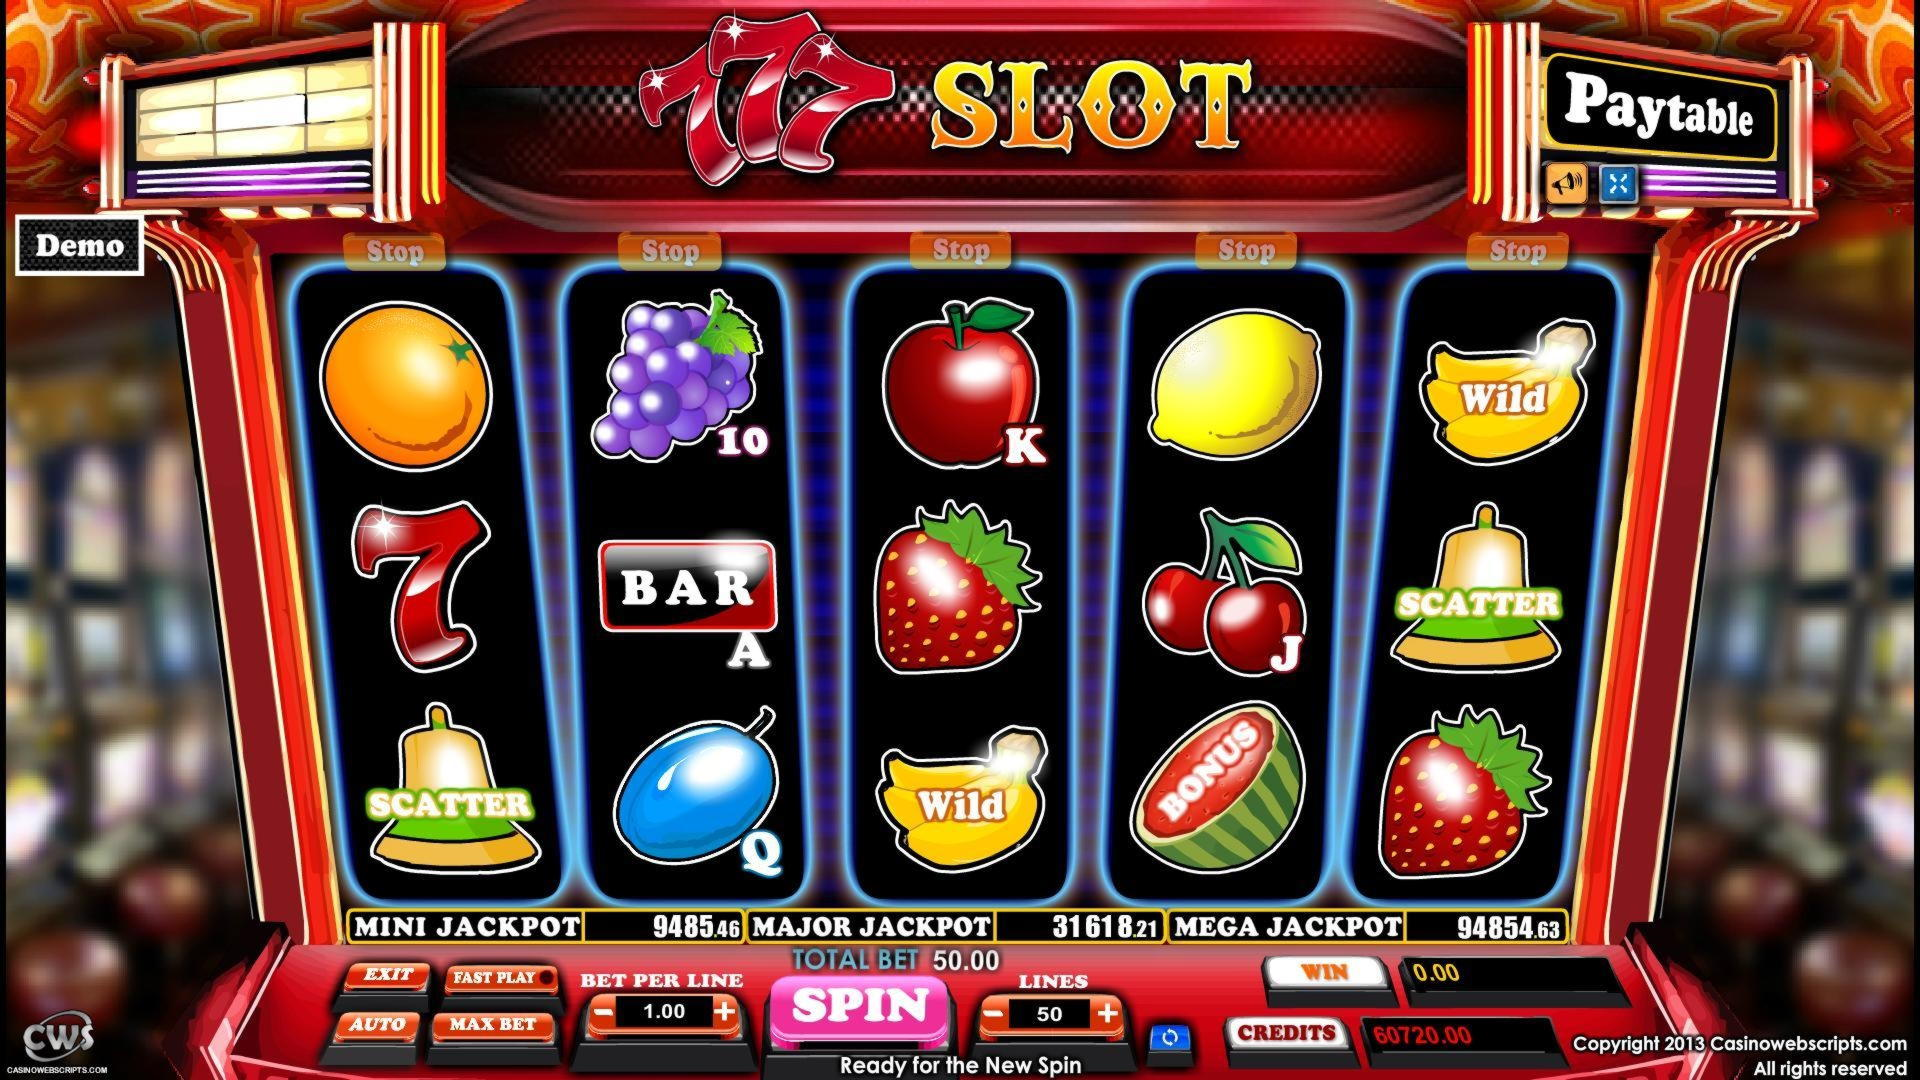 160 free spins at High Roller Casino